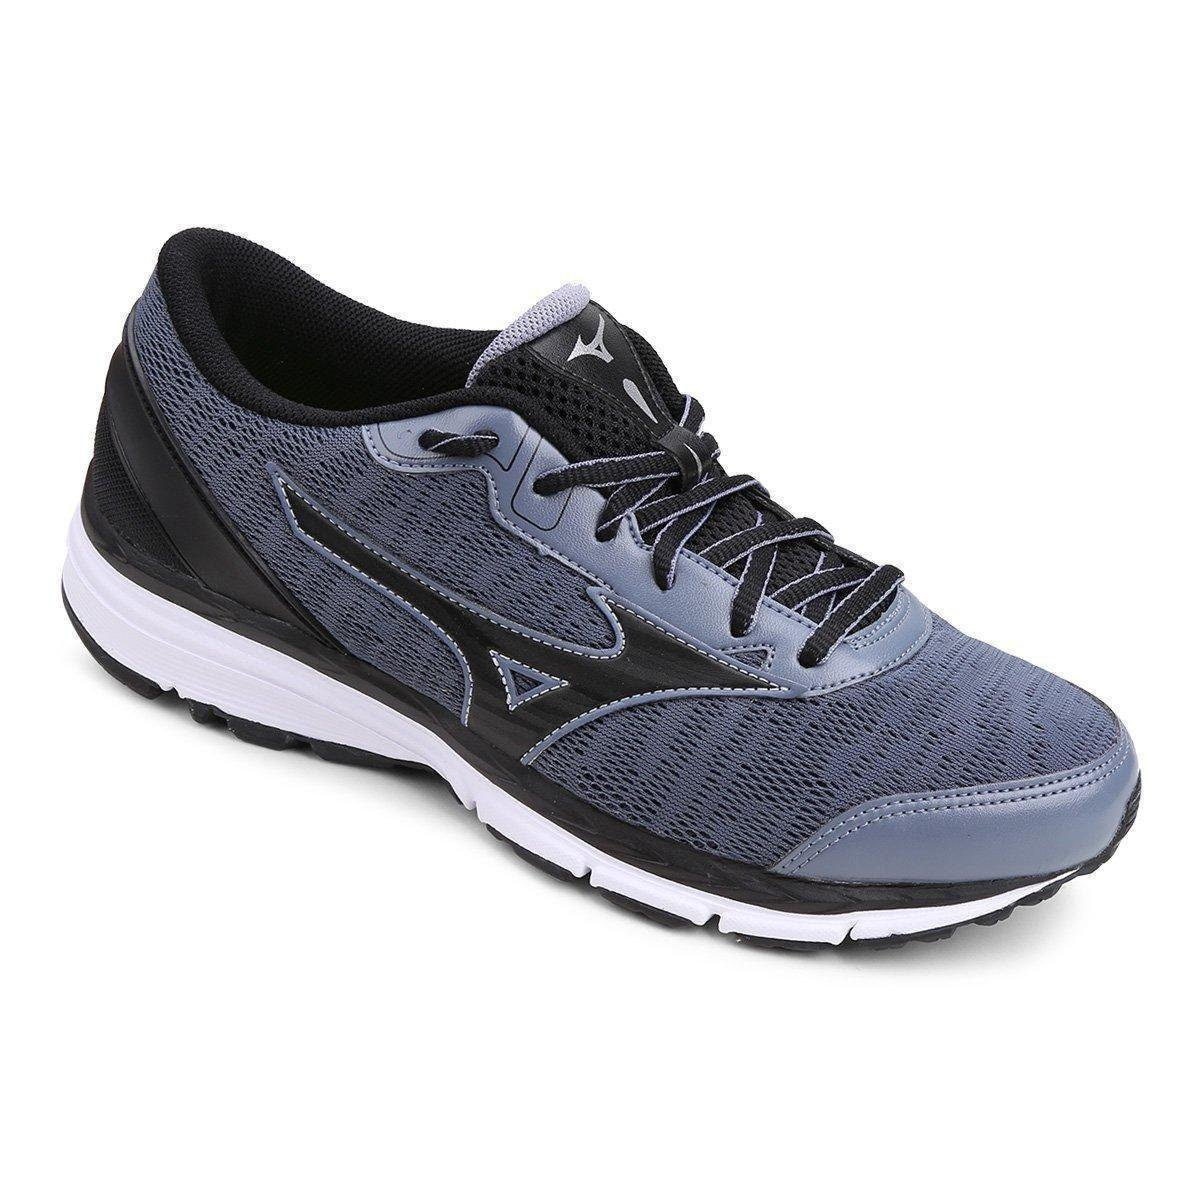 zapatillas mizuno wave rider 22 usadas zalando japan uk shoes